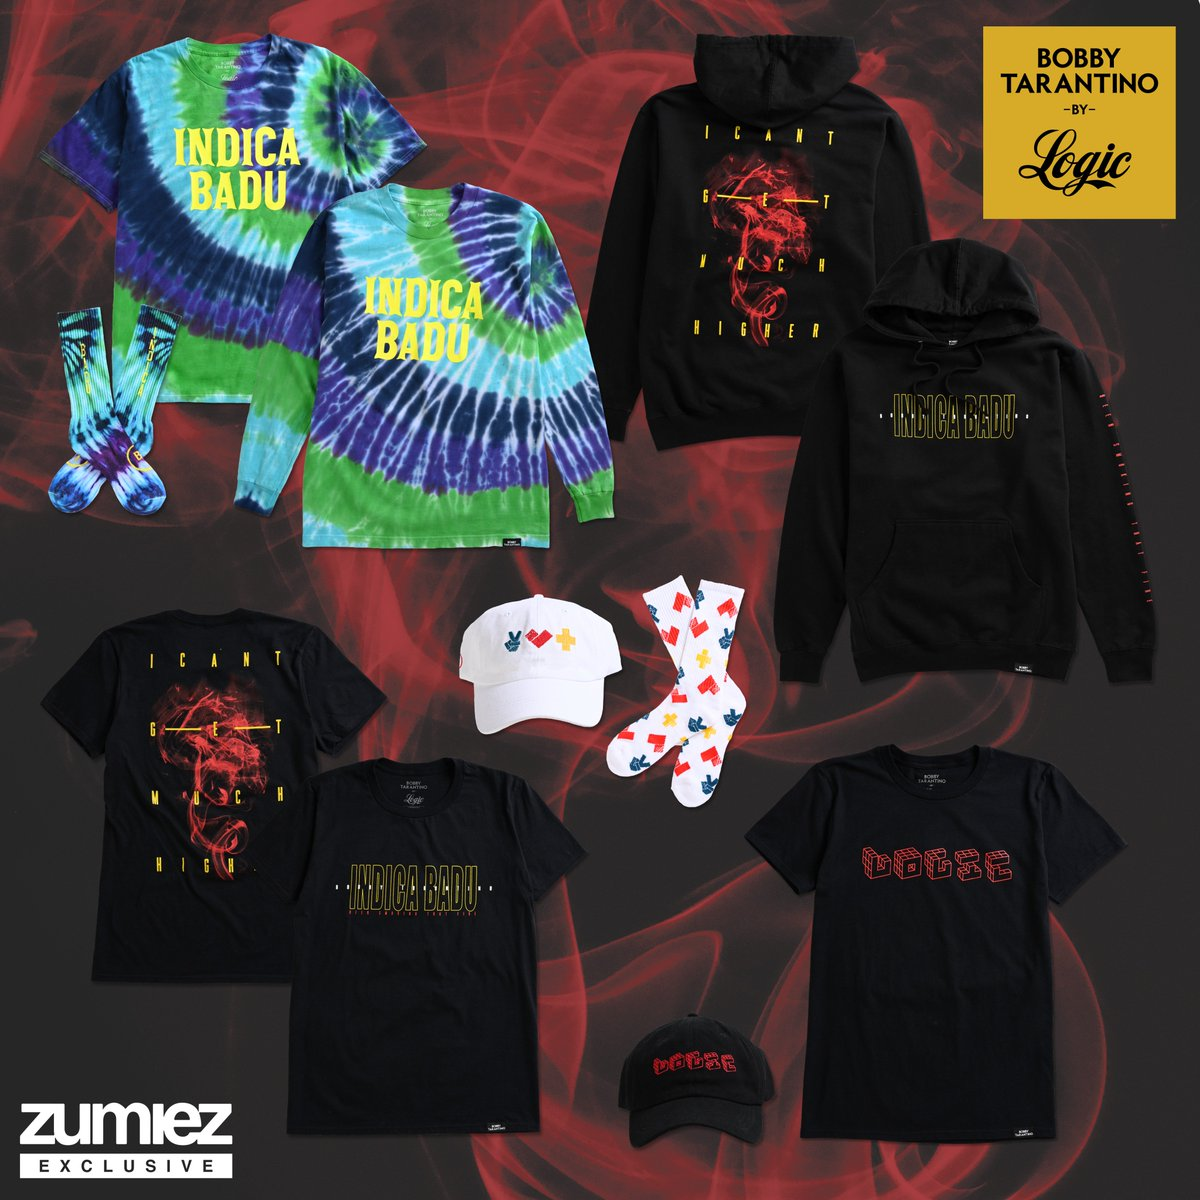 RT & follow @TeamVisionary for a chance to win one of 10 items from the 'Bobby Tarantino' capsule with Zumiez. Giveaway ends March 15.